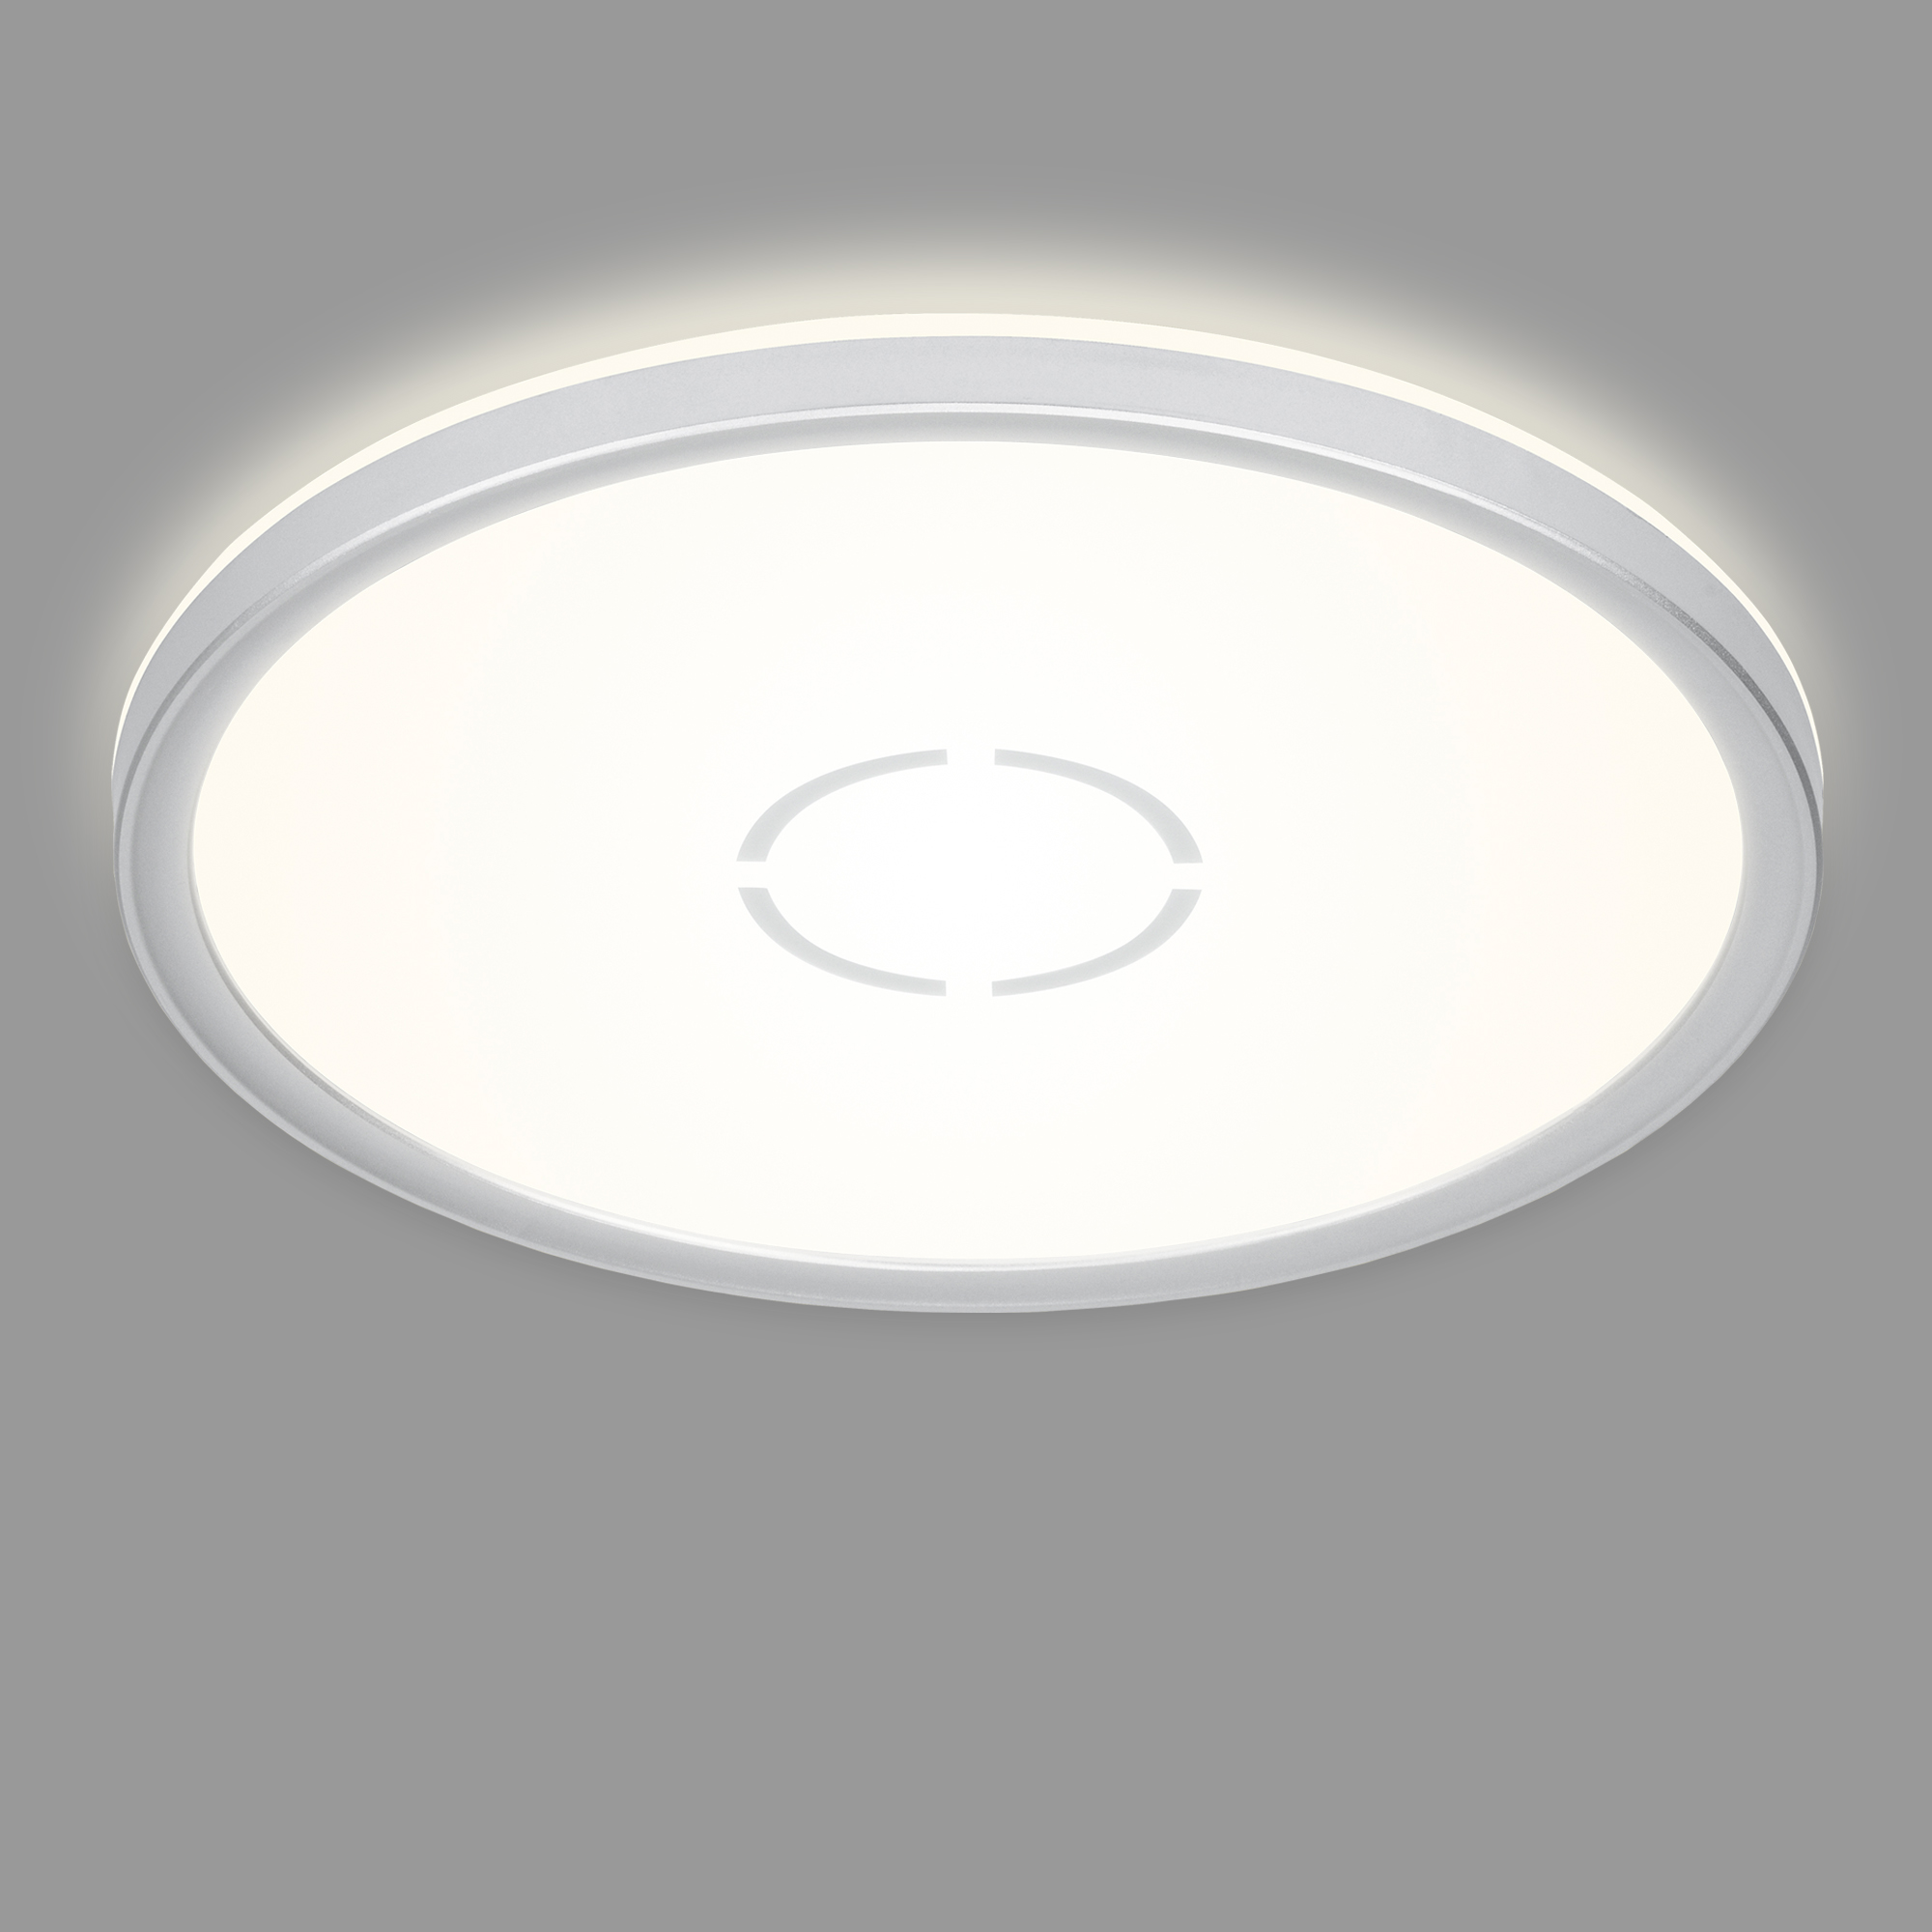 Slim LED Panel, Ø 29,3 cm, 2400 LUMEN, 18 WATT, Silber